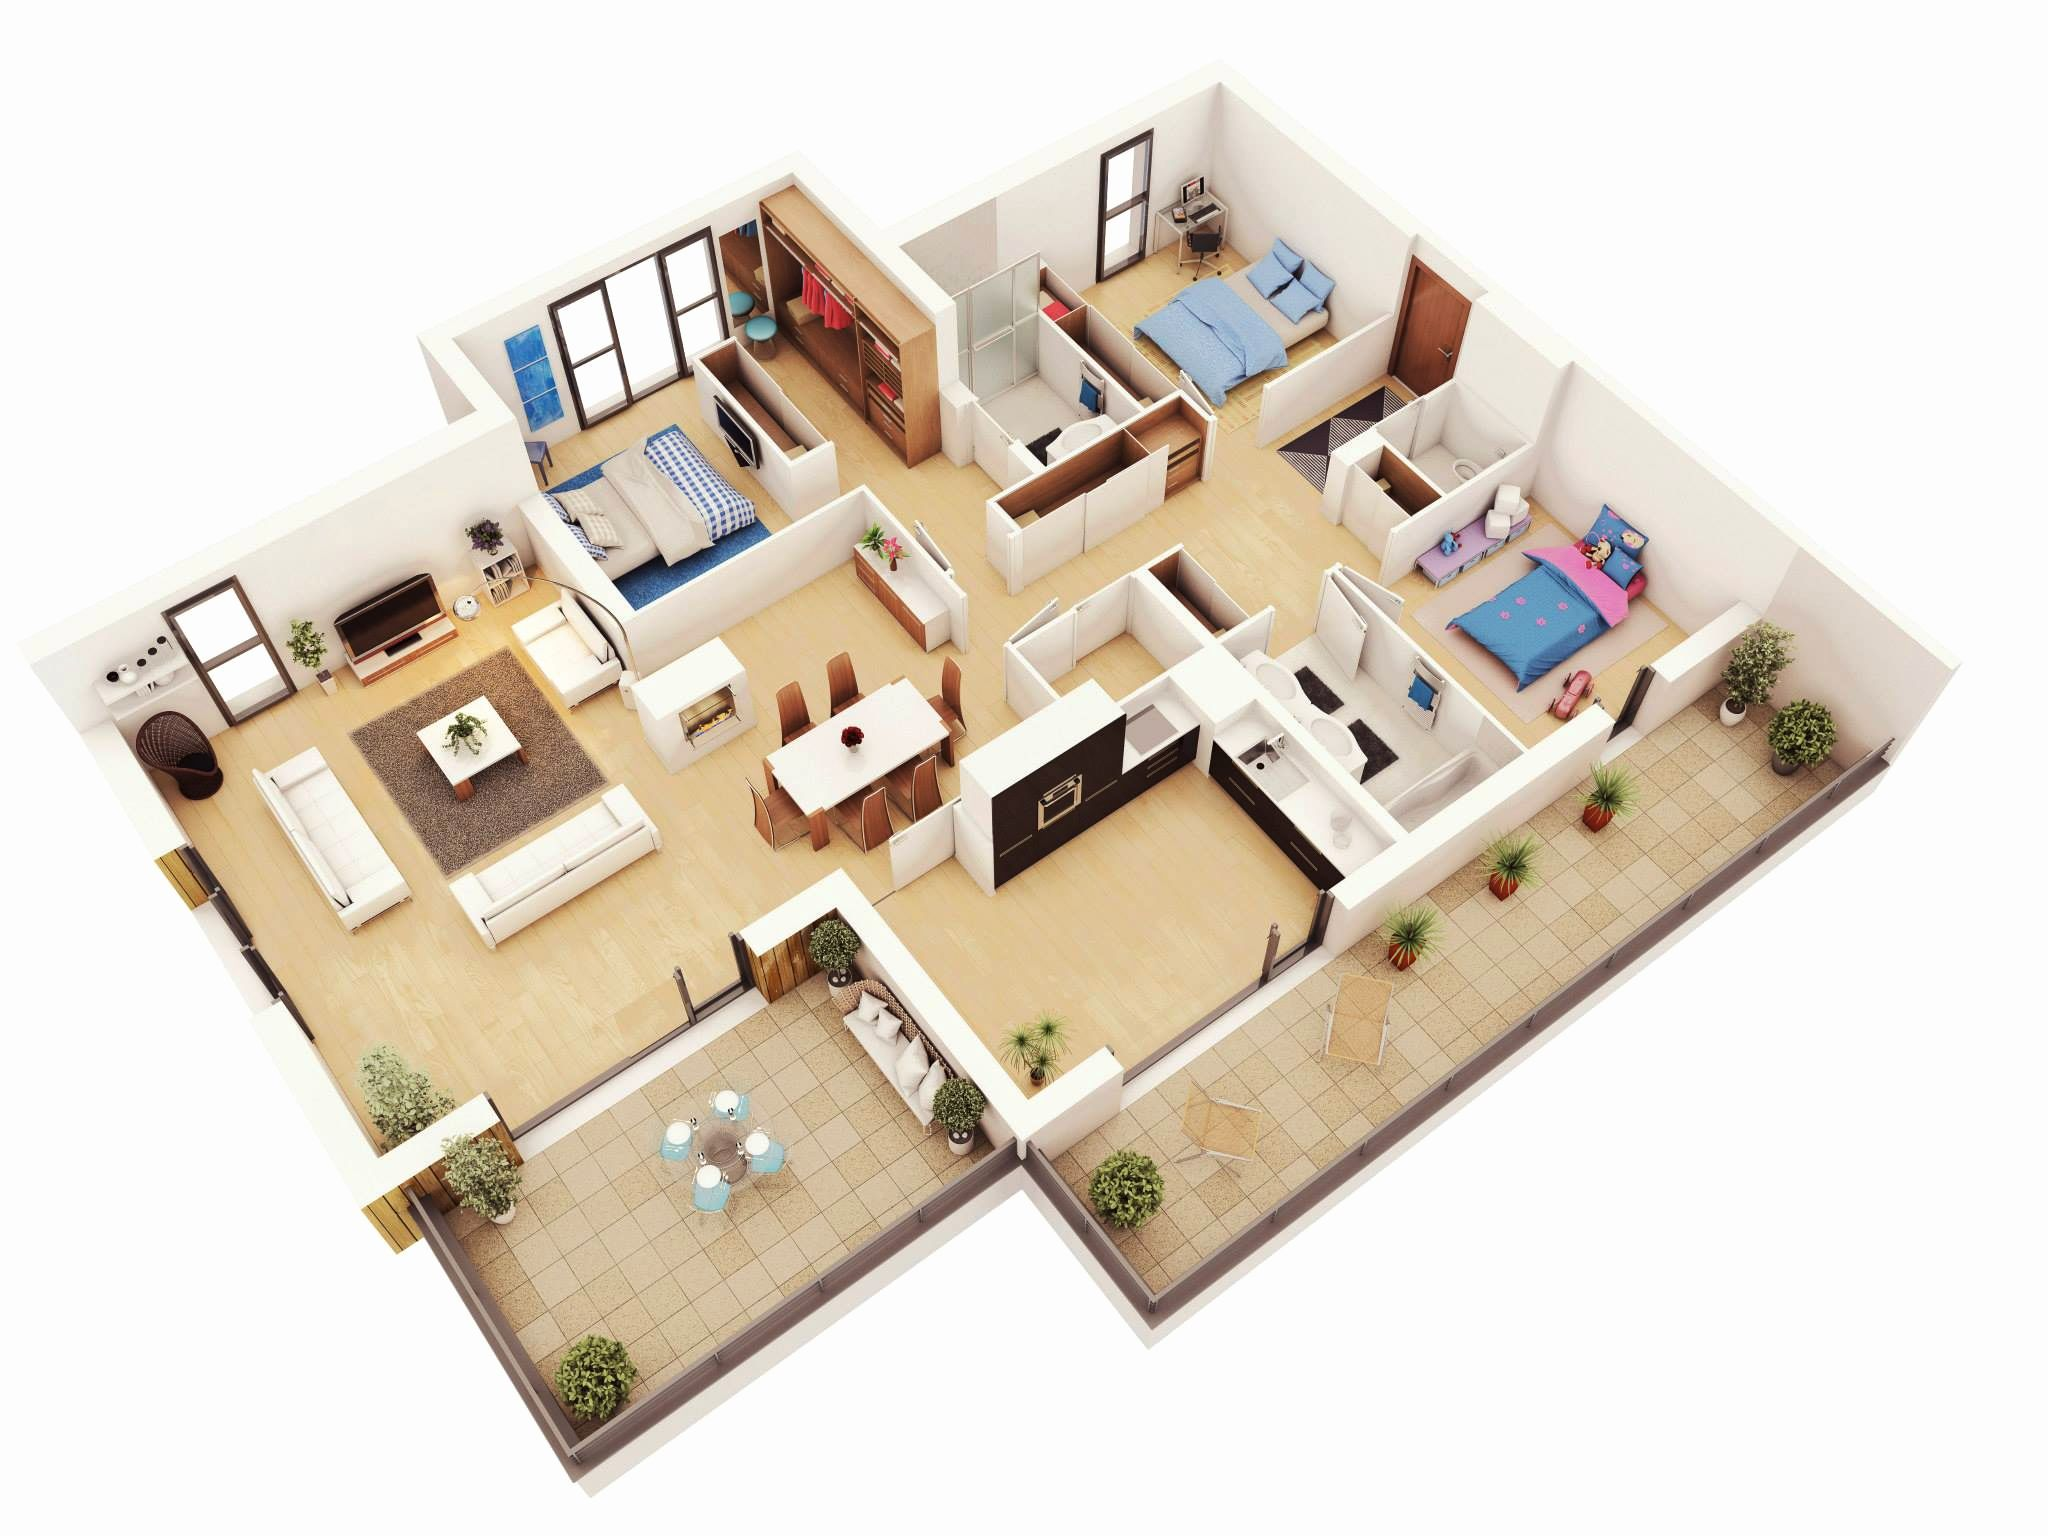 3 Roomed House Plans Beautiful 25 More 3 Bedroom 3d Floor Plans In 2020 3d House Plans Bedroom House Plans House Floor Plans